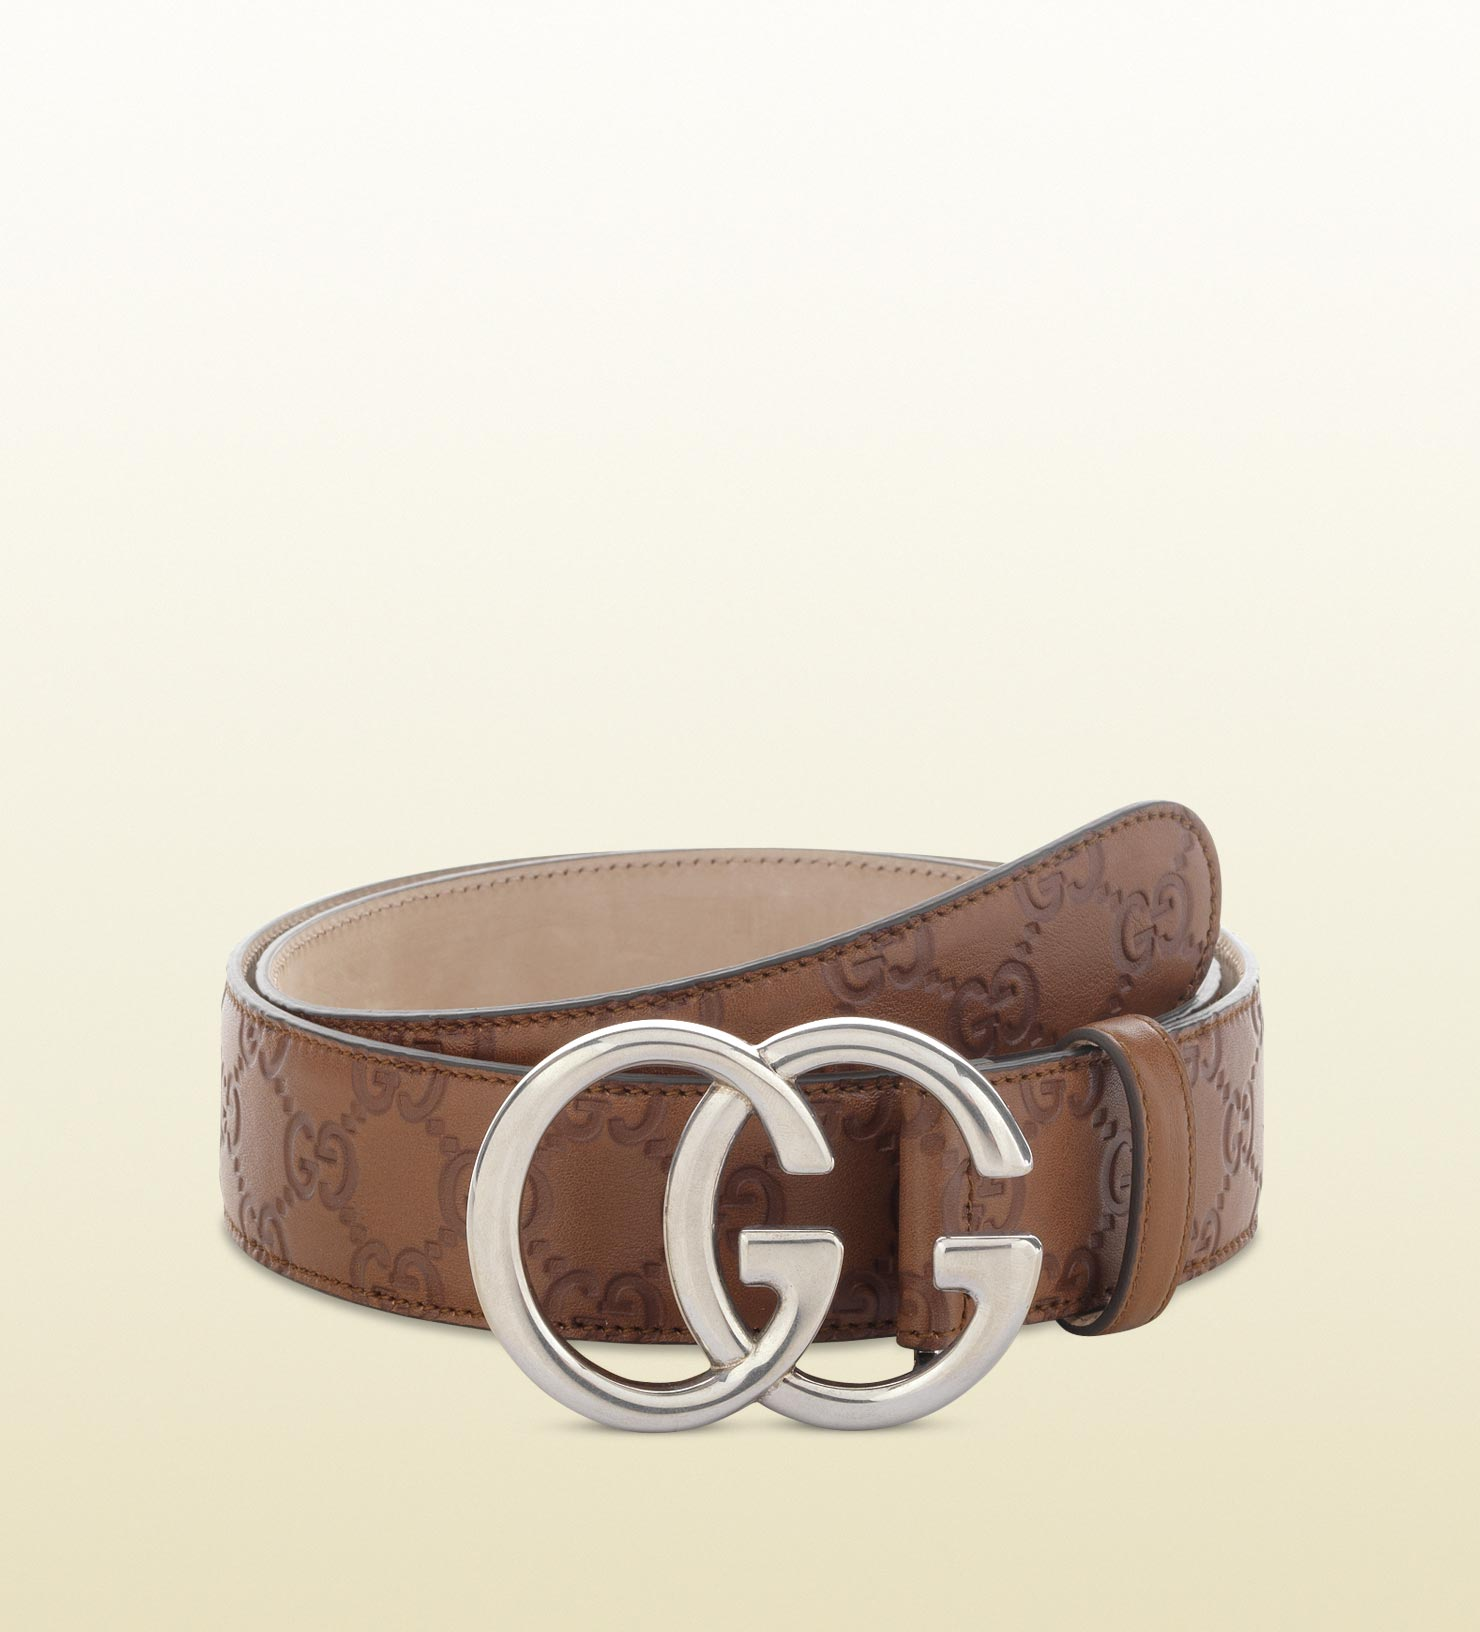 6ca5405368e Lyst - Gucci Belt With Double G Buckle in Brown for Men